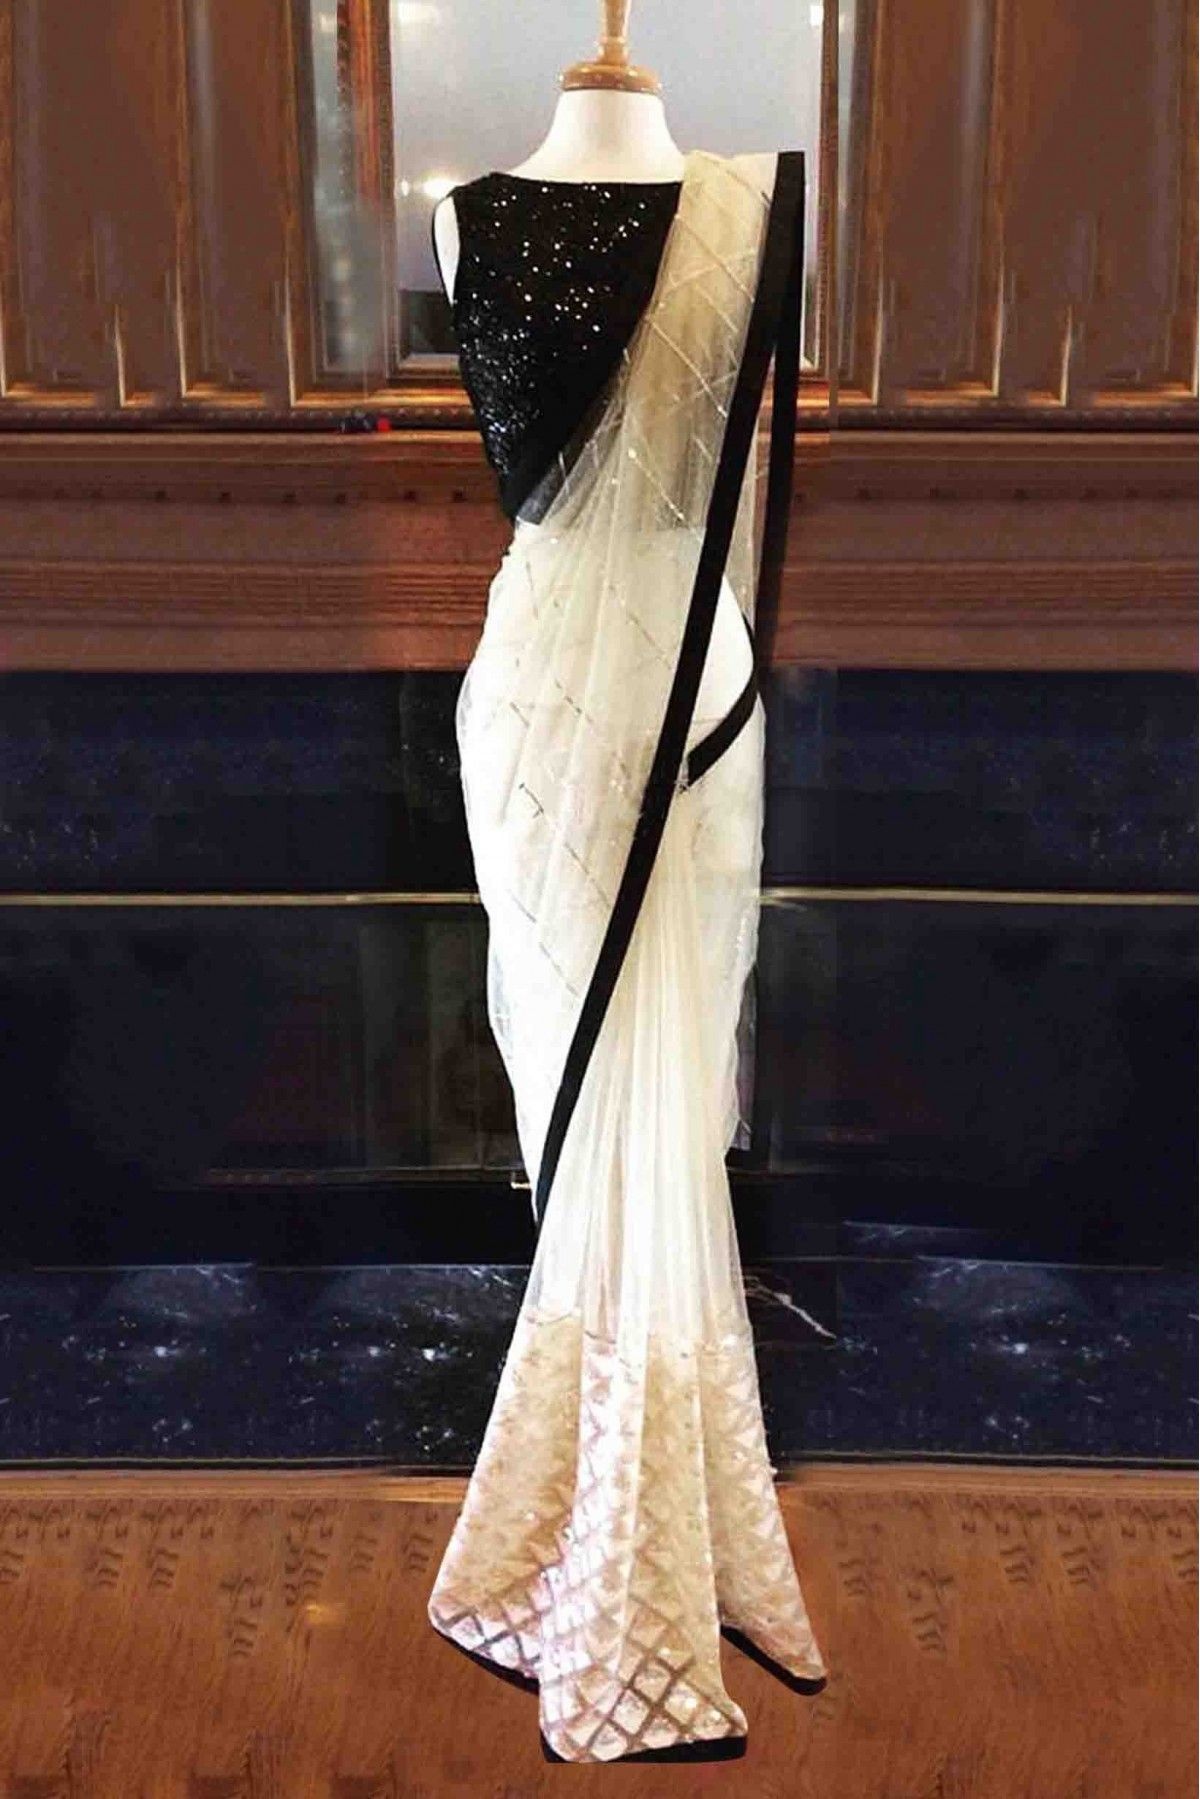 aefcfd1cd8 Buy Nylon Mono Net Saree In White And Black Colour for women @  ninecolours.com. Worldwide Free Shipping Available!